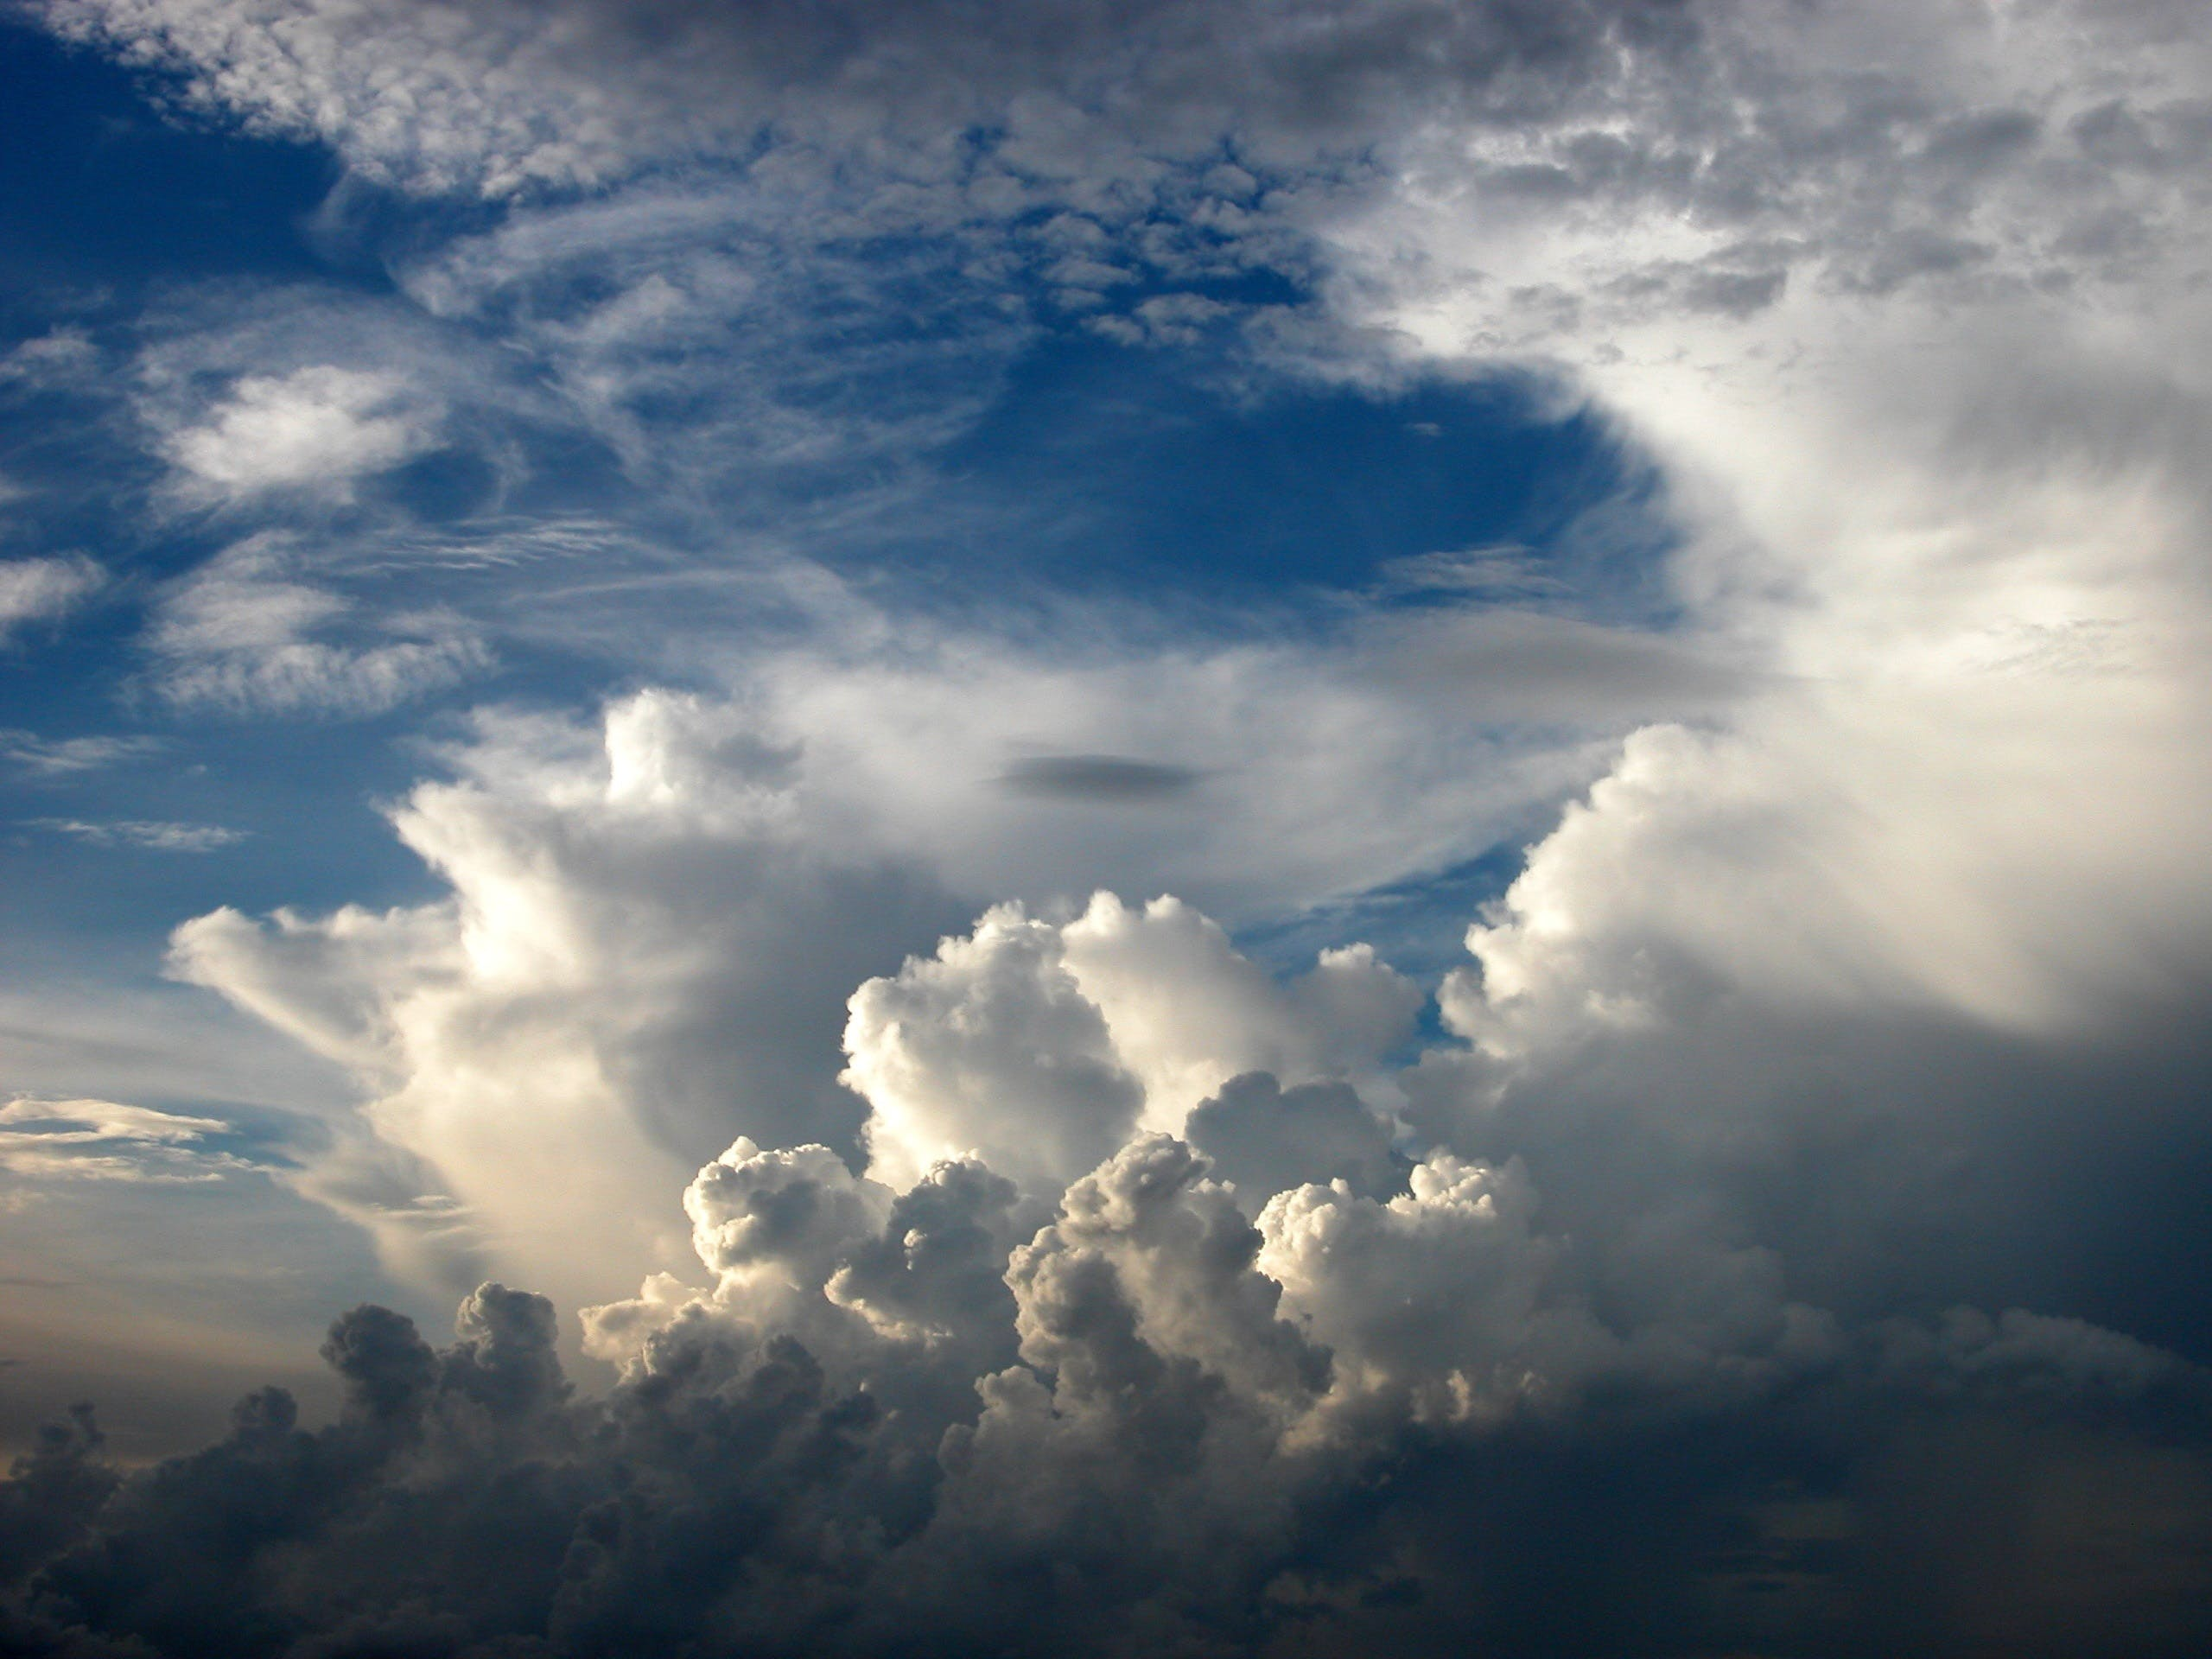 Free stock photo of sky, clouds, weather, blue